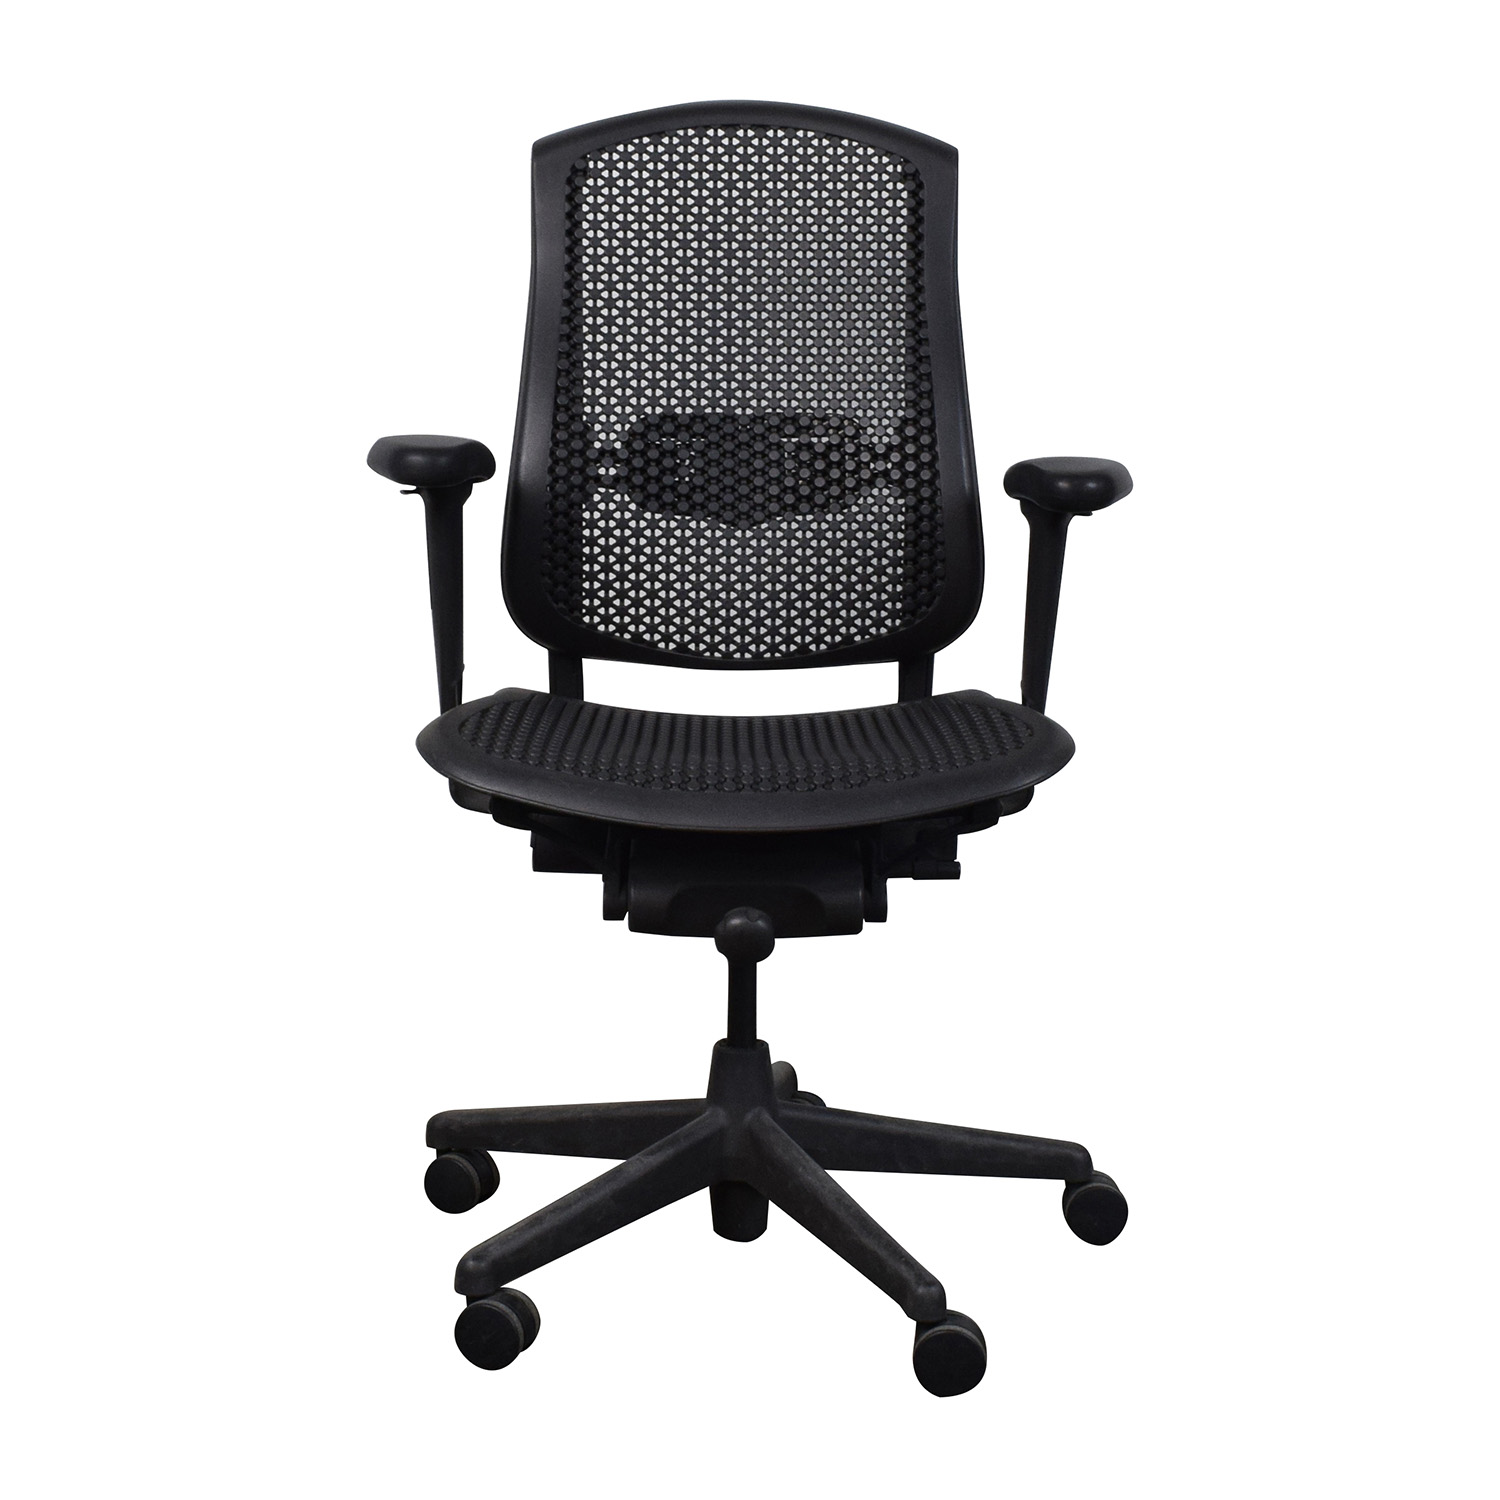 Herman Miller Herman Miller Celle Chair on sale